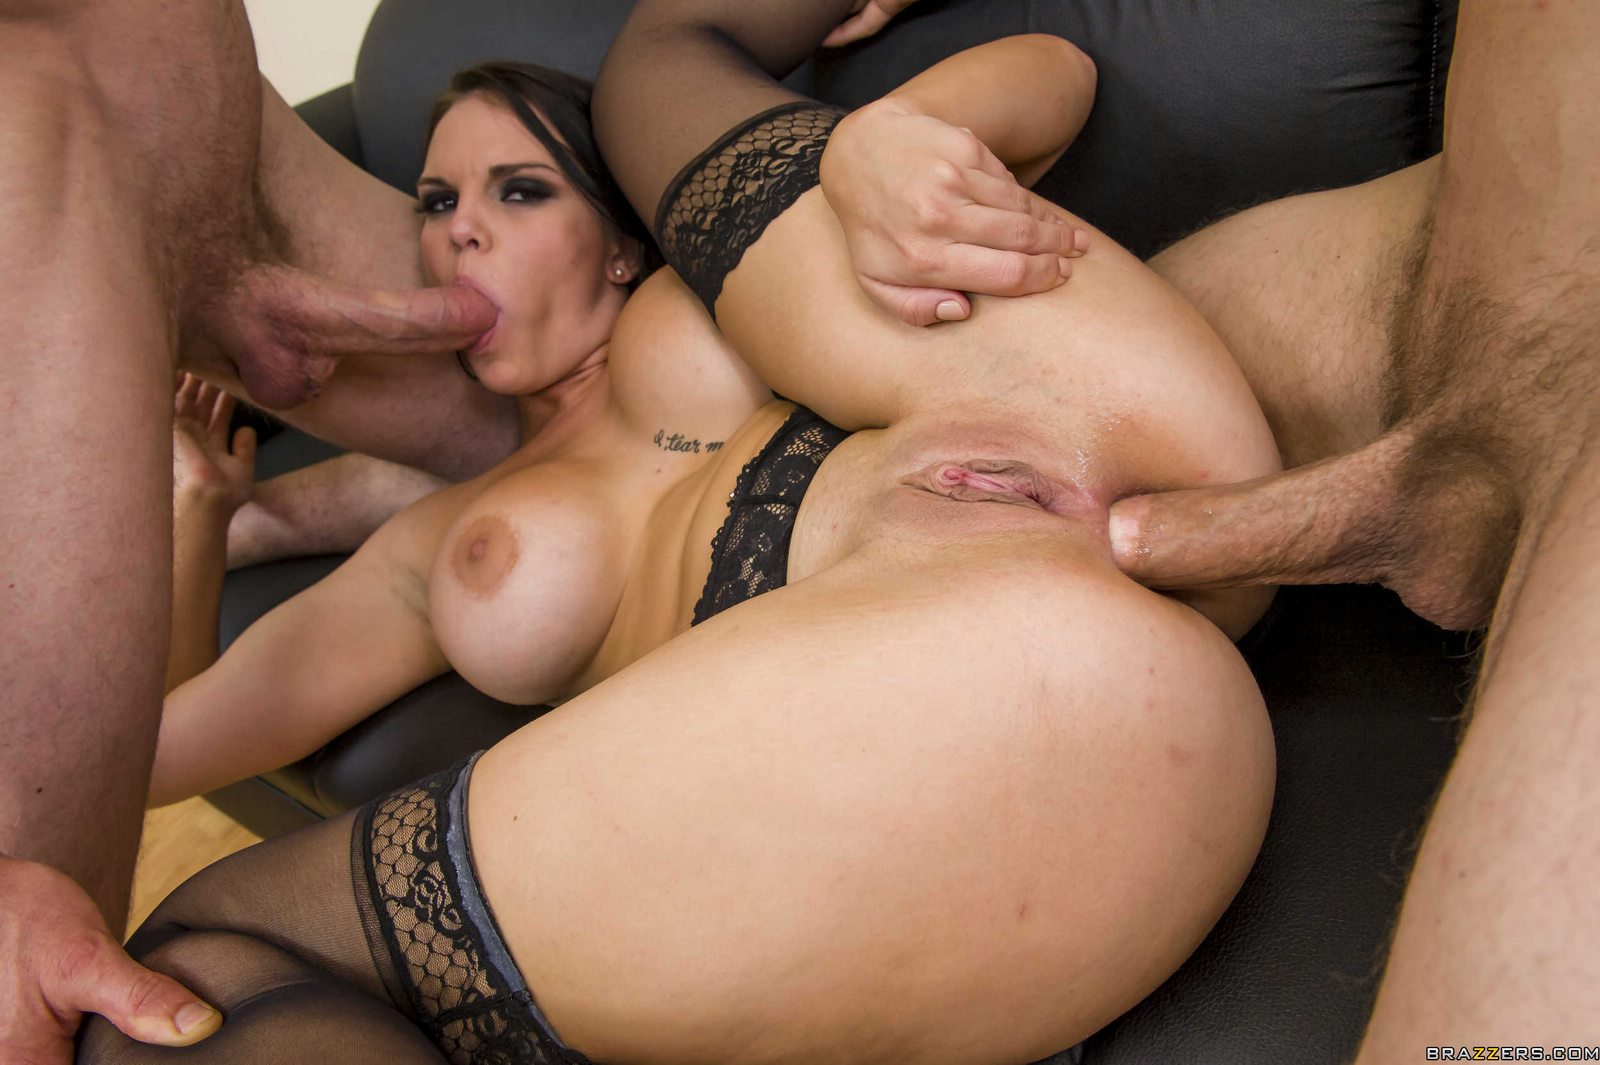 A naughty threesome with stepmom joining 1